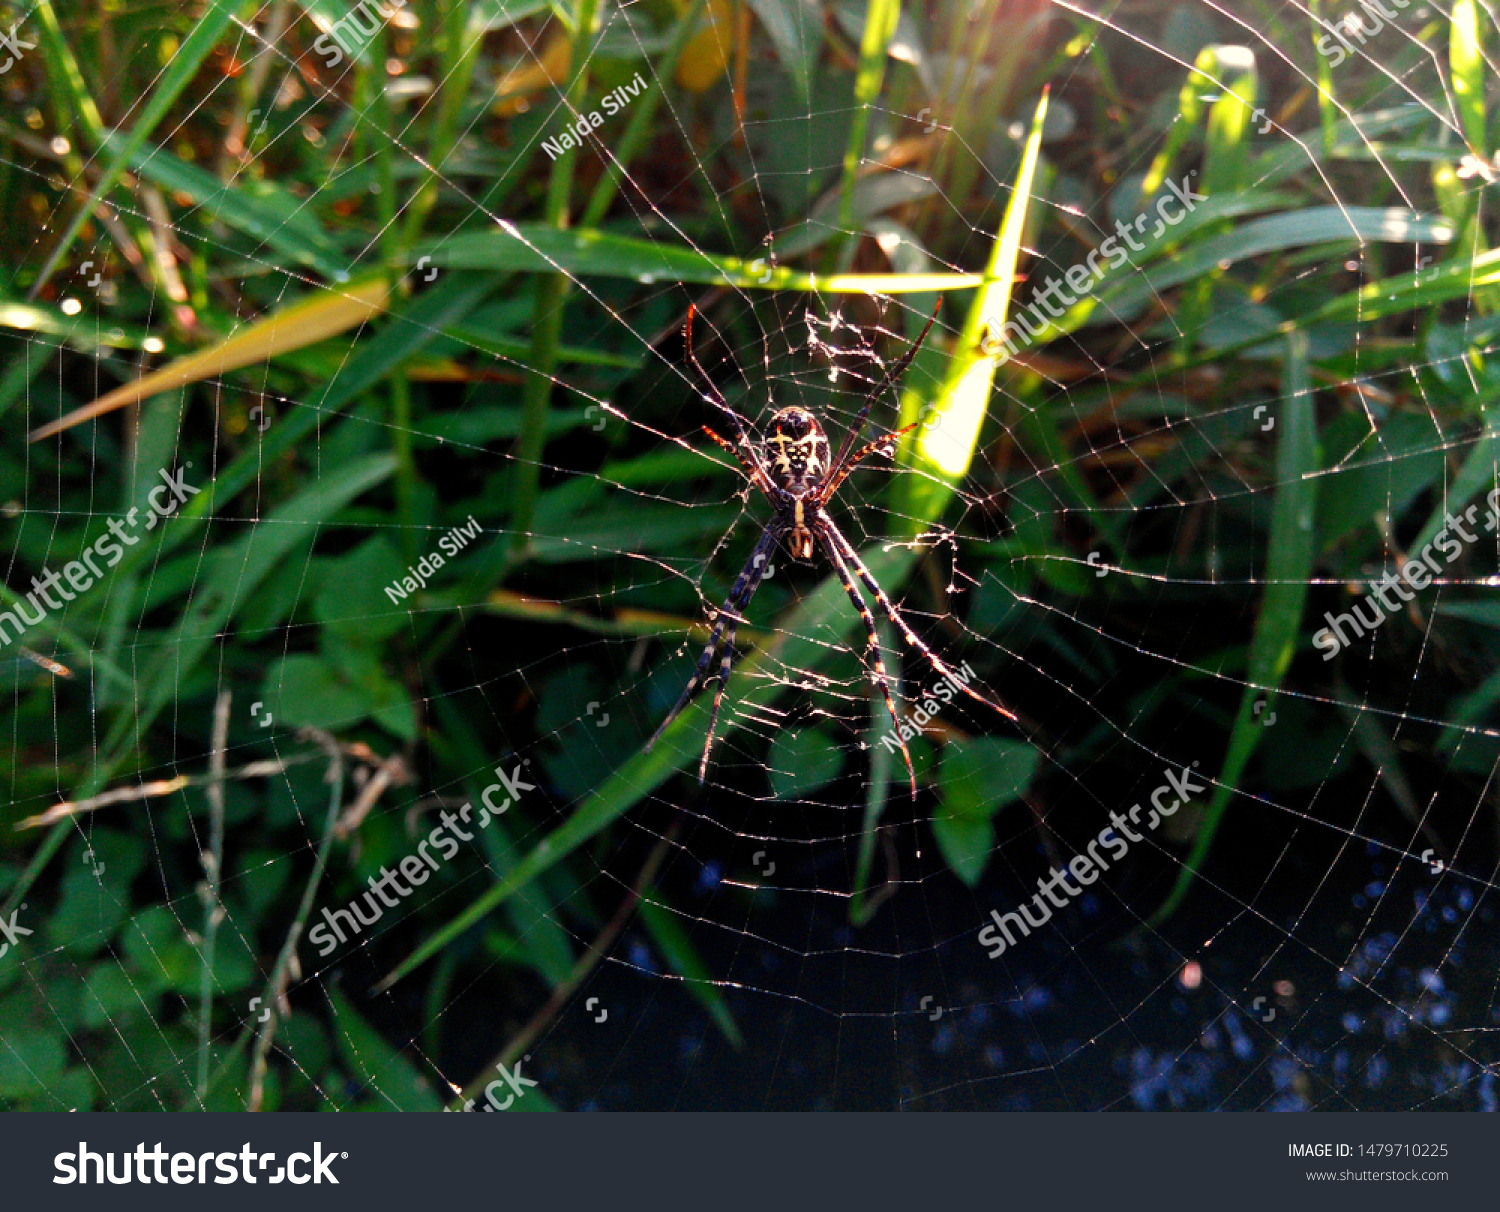 a small spider above a cobweb, in a small river, in green, natural and cool fields #1479710225